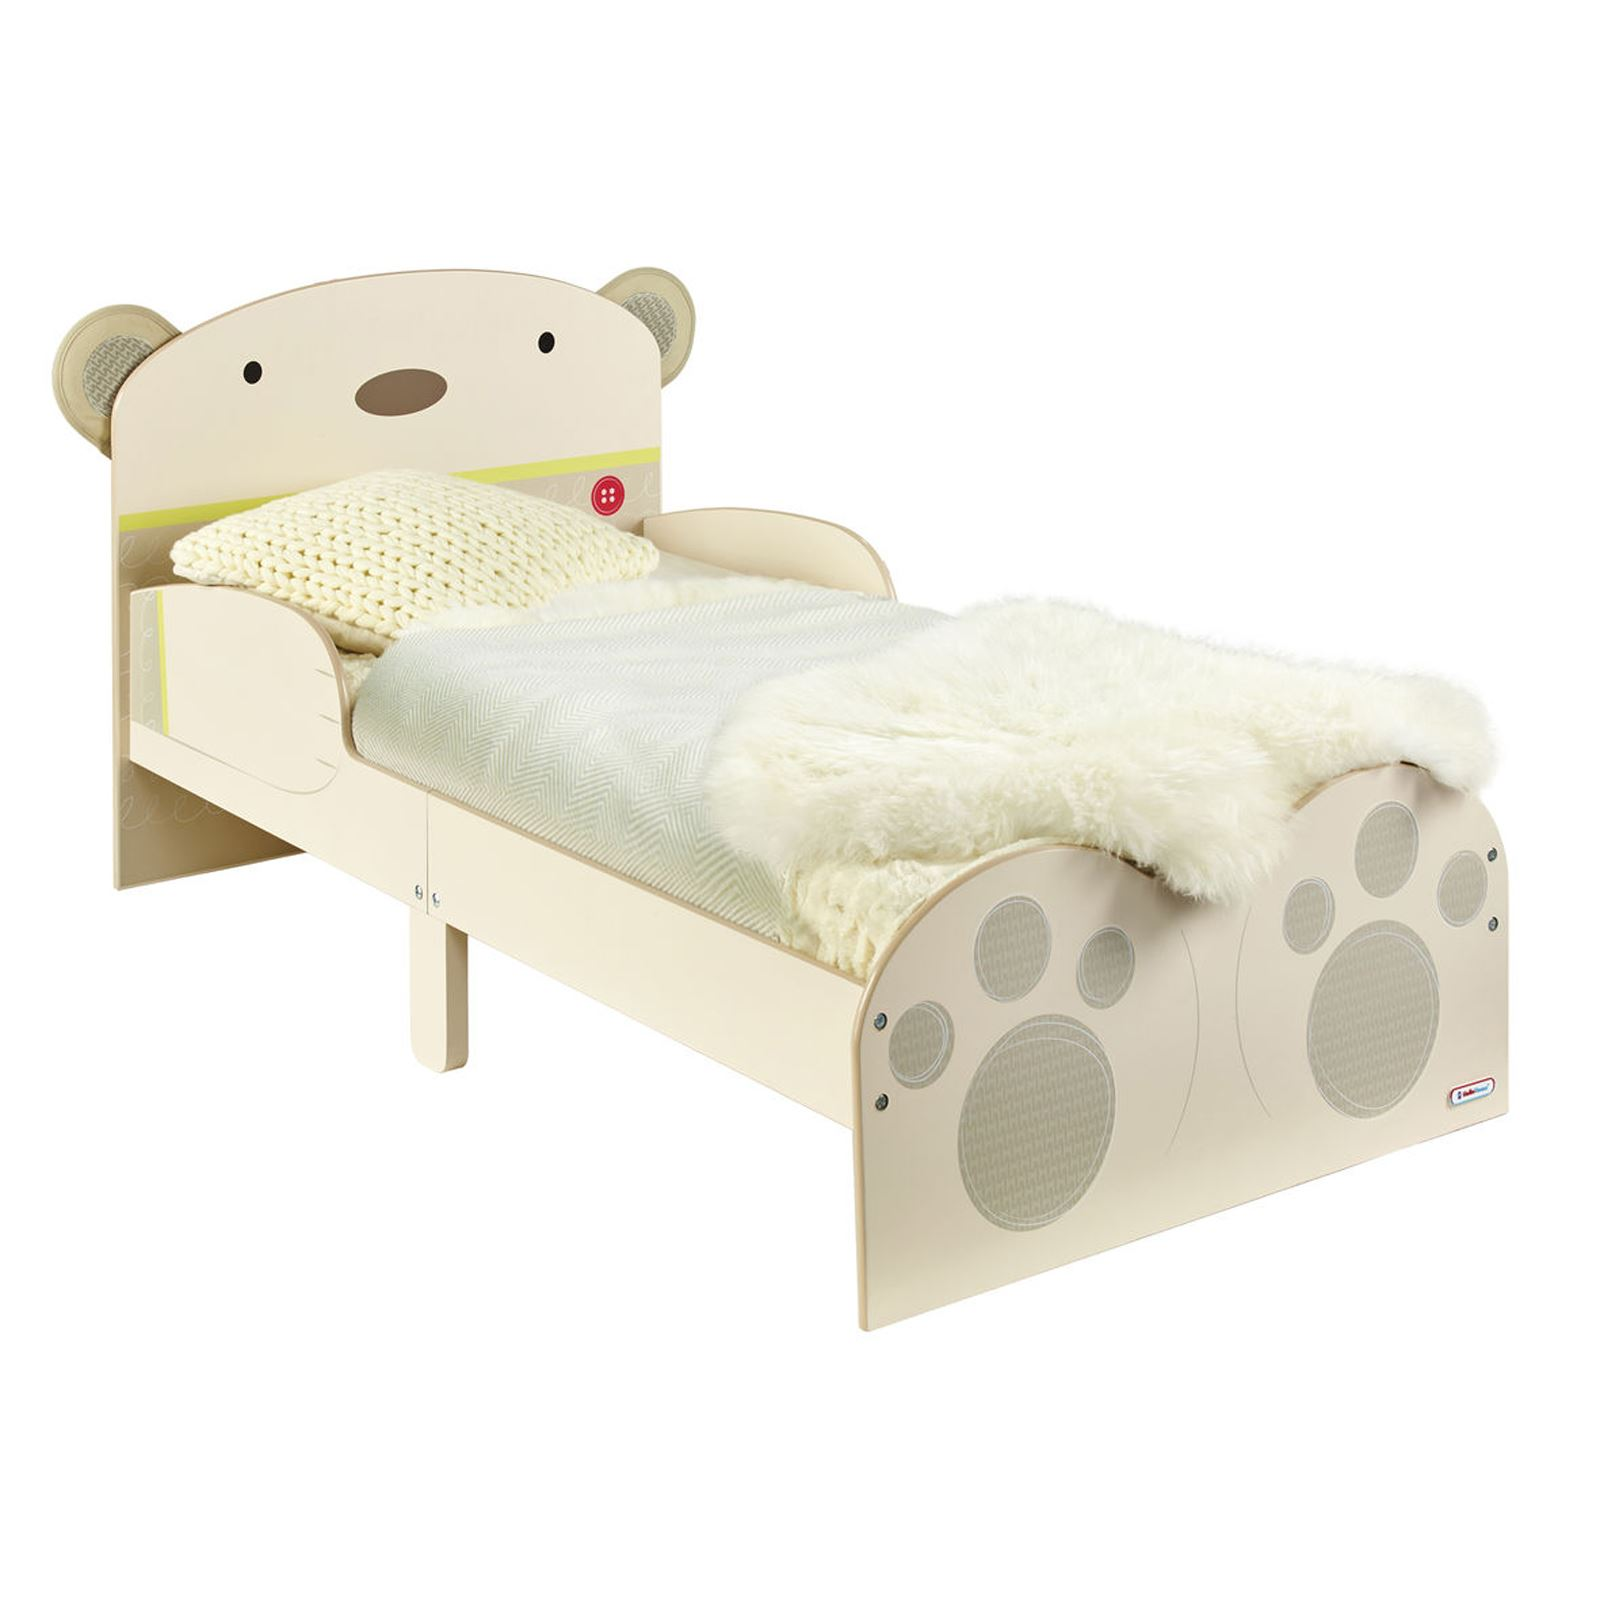 beautiful other blogbeen accessories with uqcvhnr acquiring and a toddler bed mattress echo